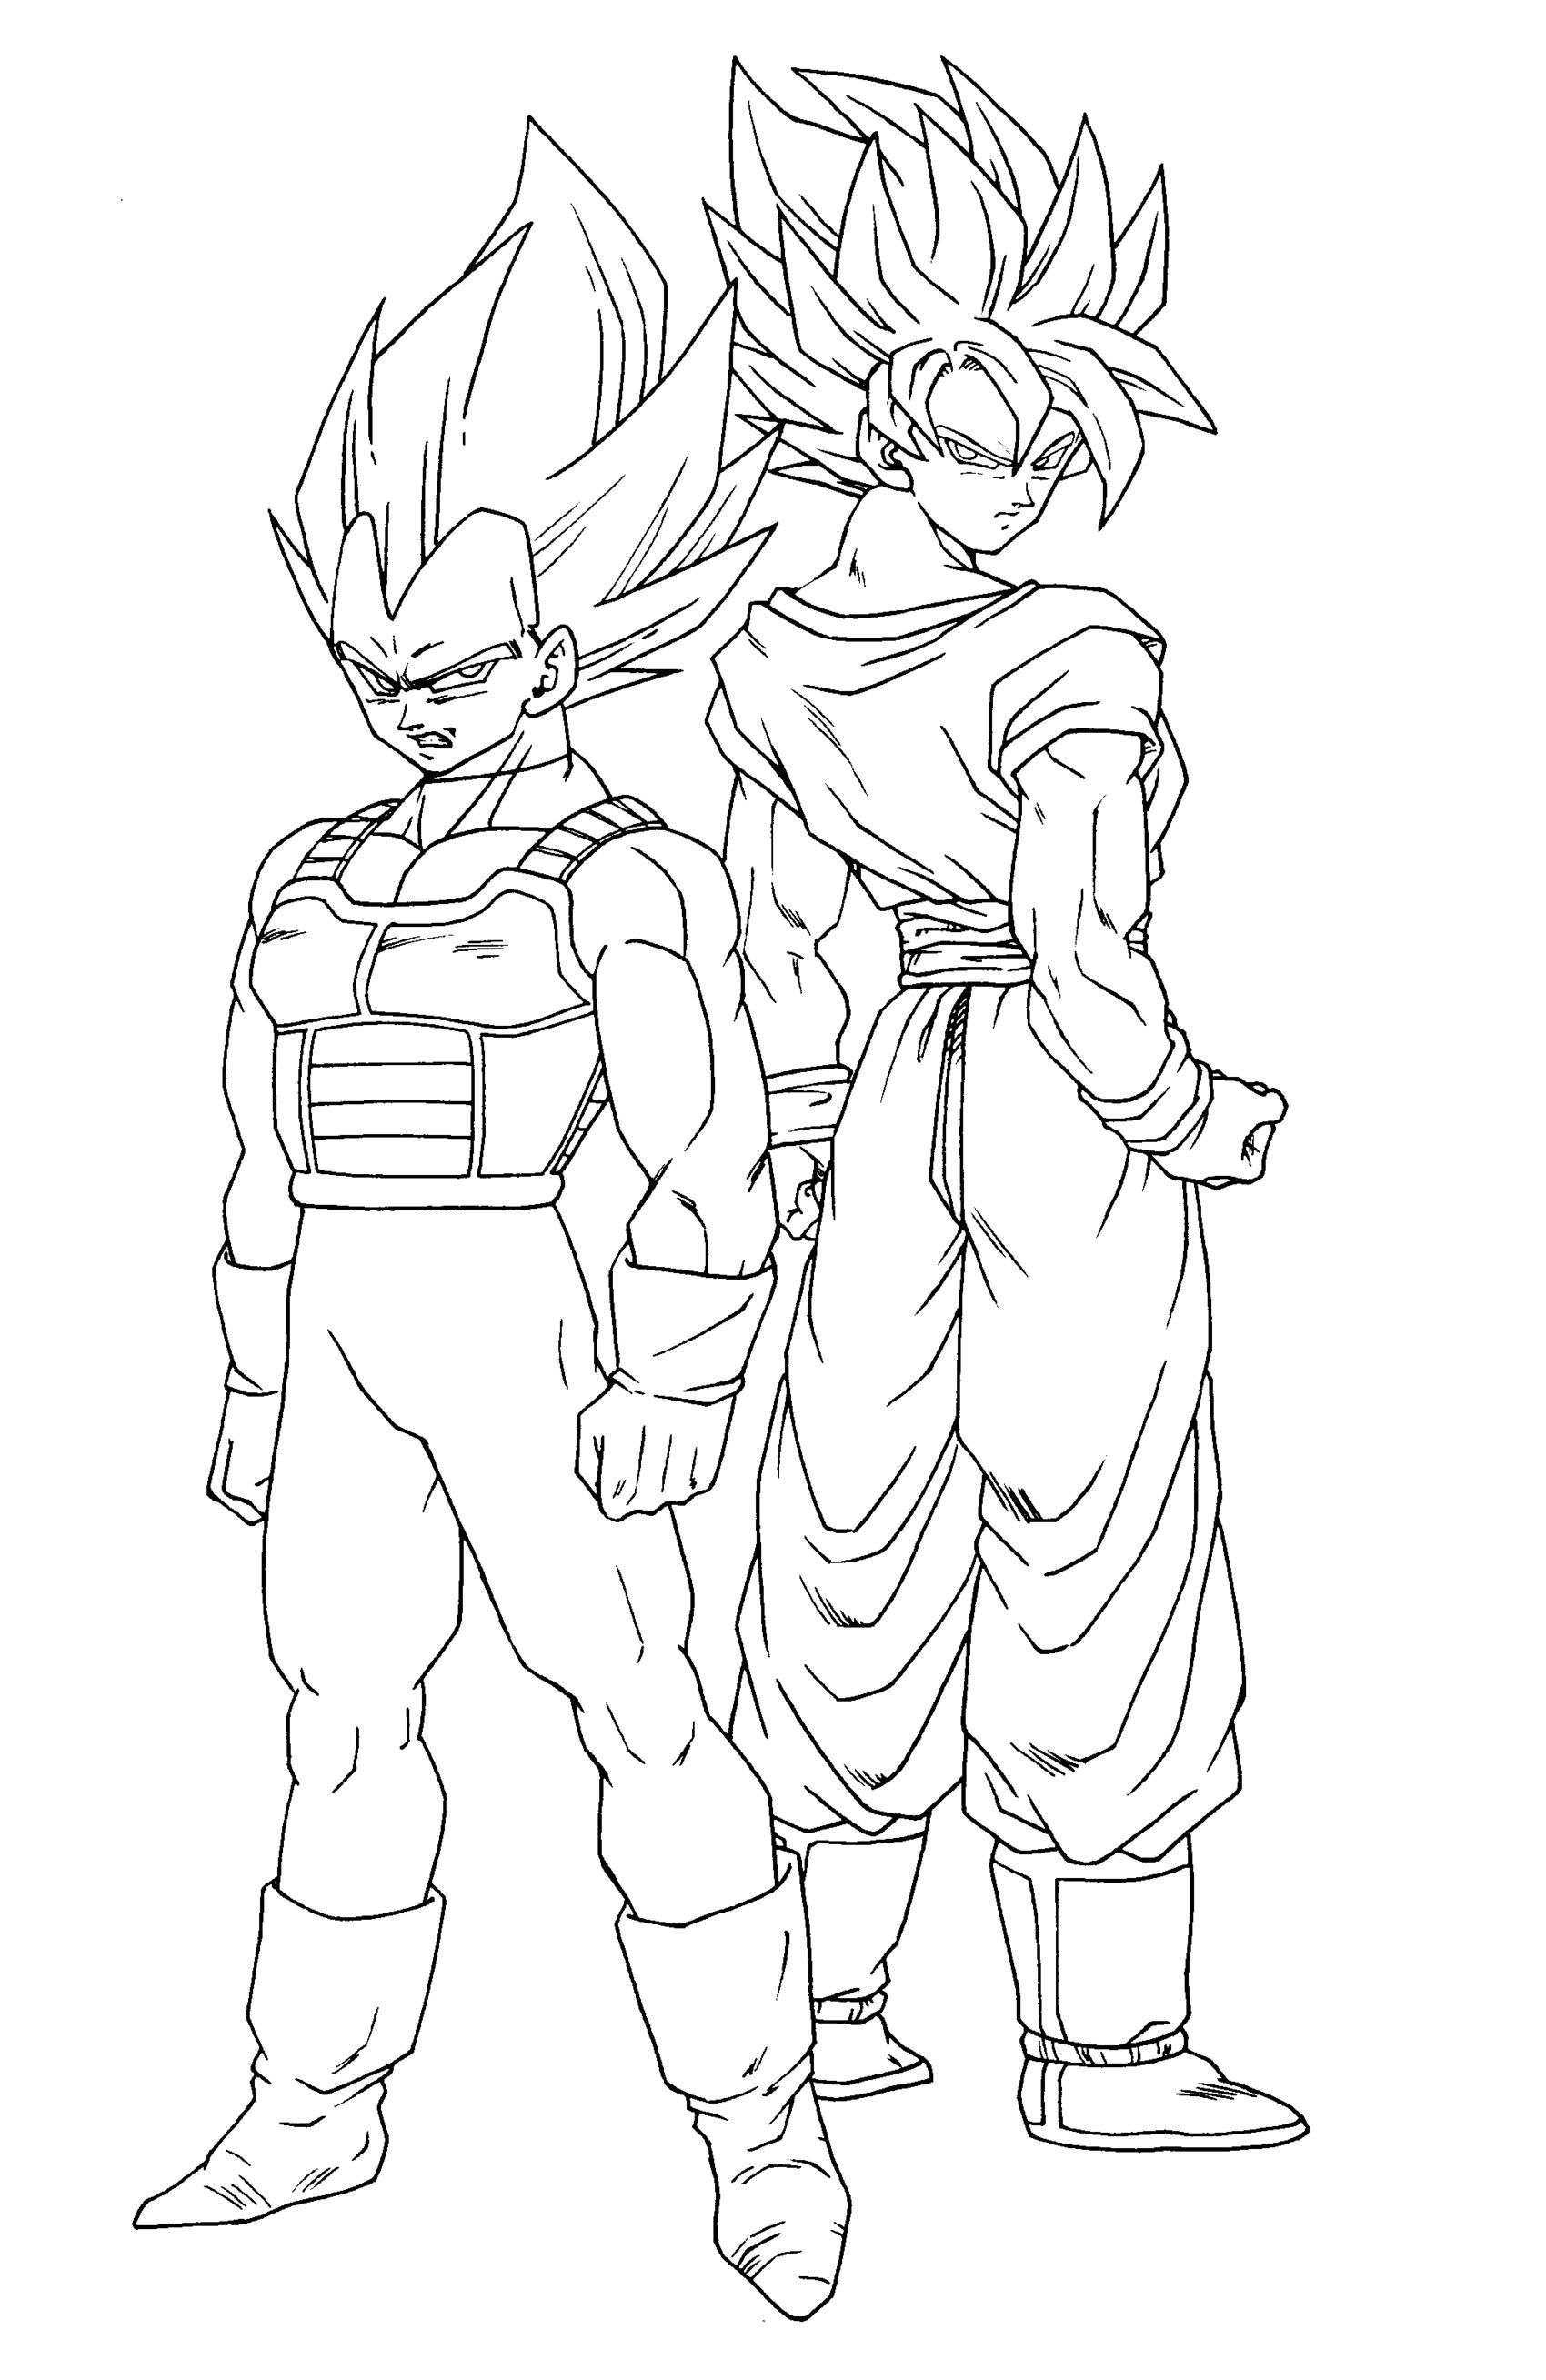 Coloriage Dragon Ball Coloriages pour enfants